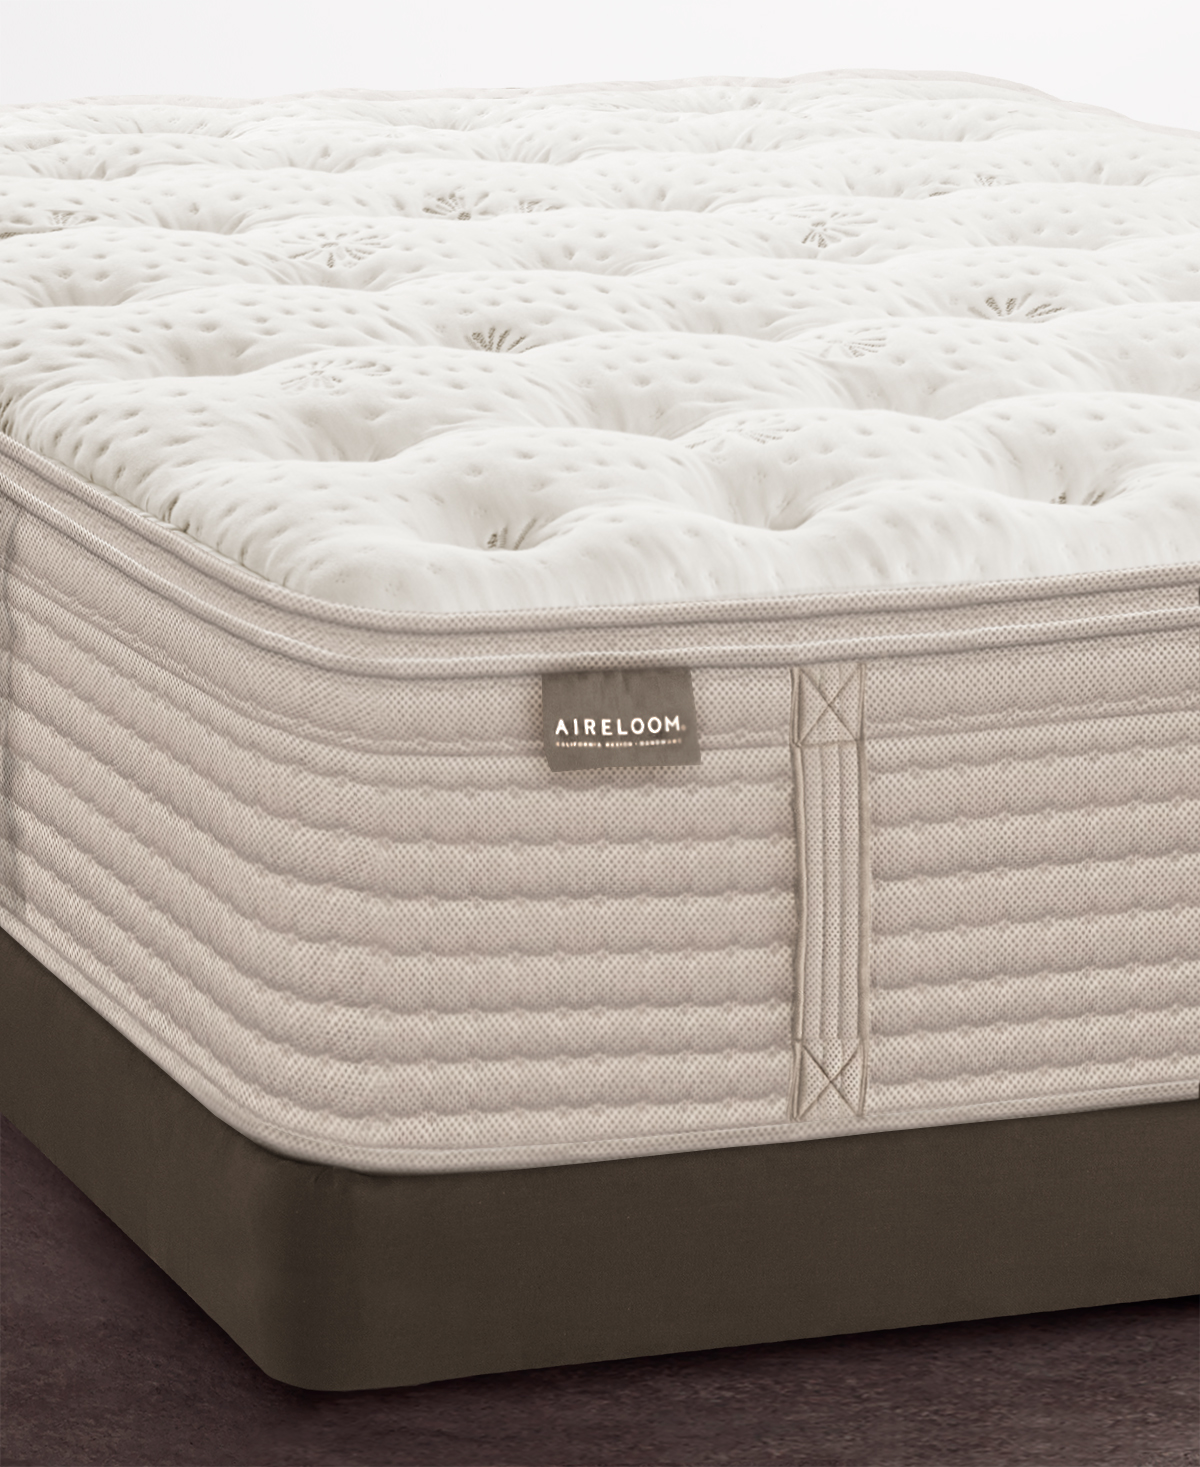 Aireloom Preferred Luxetop Firm Mattress Clearance Sale